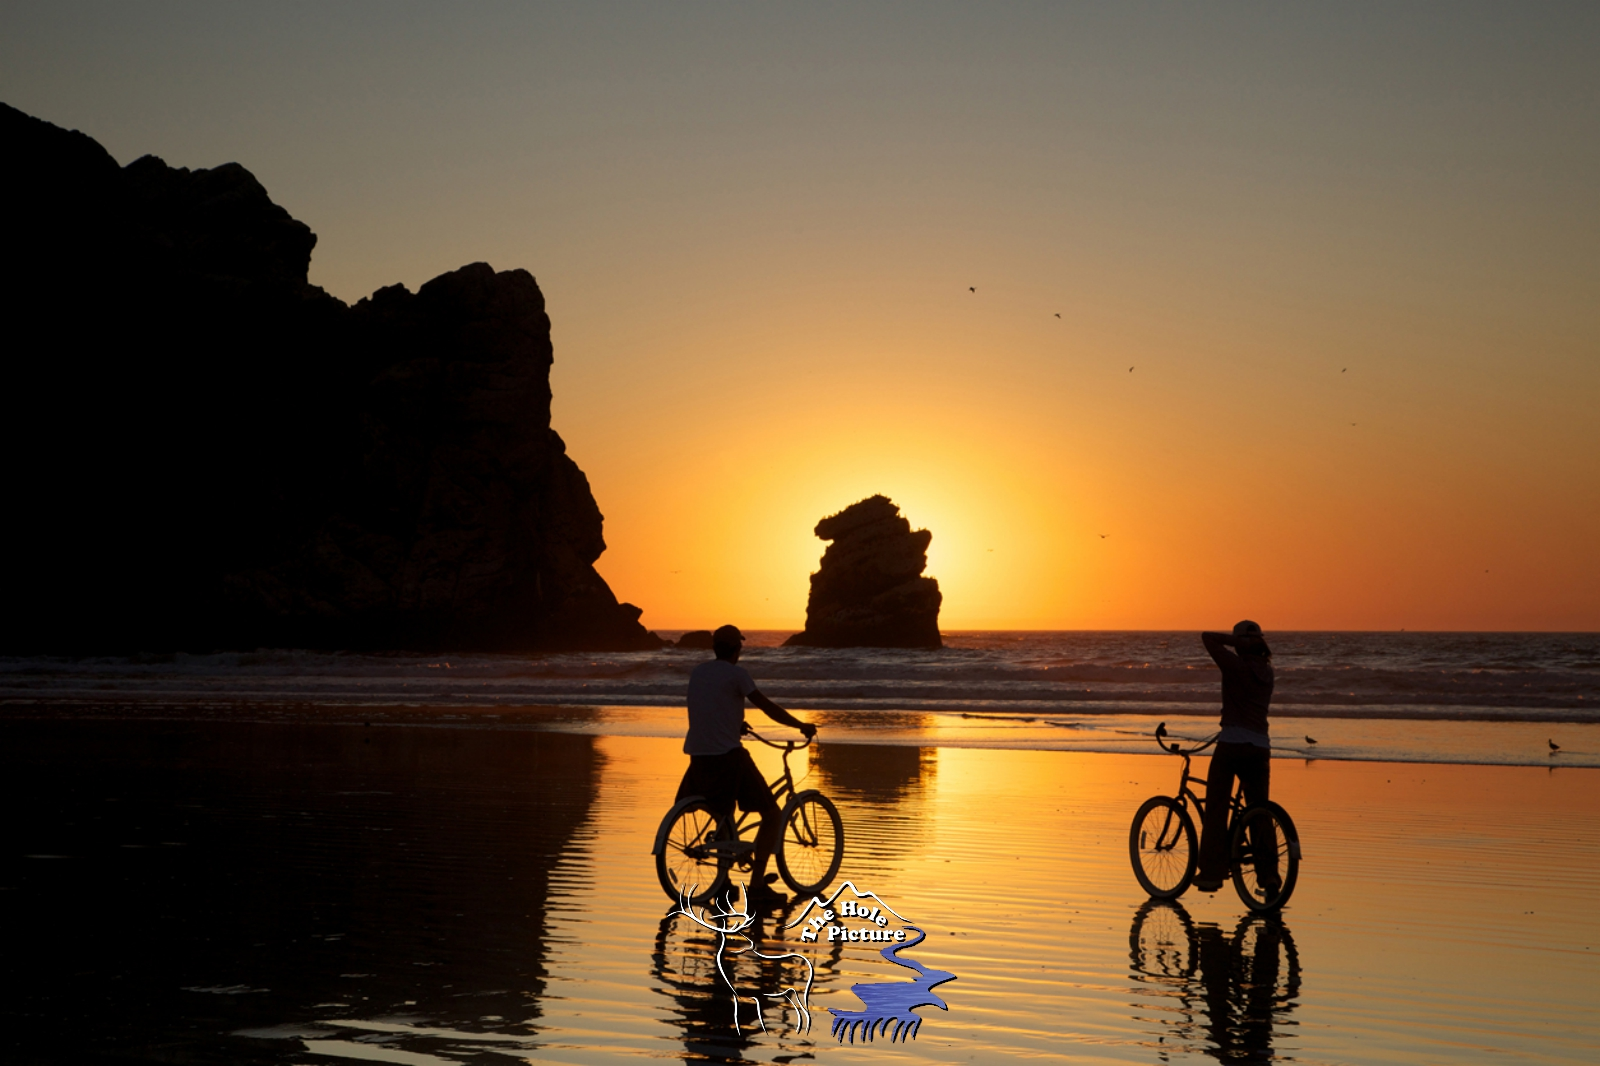 Bicyclers, Morro Bay Sunset